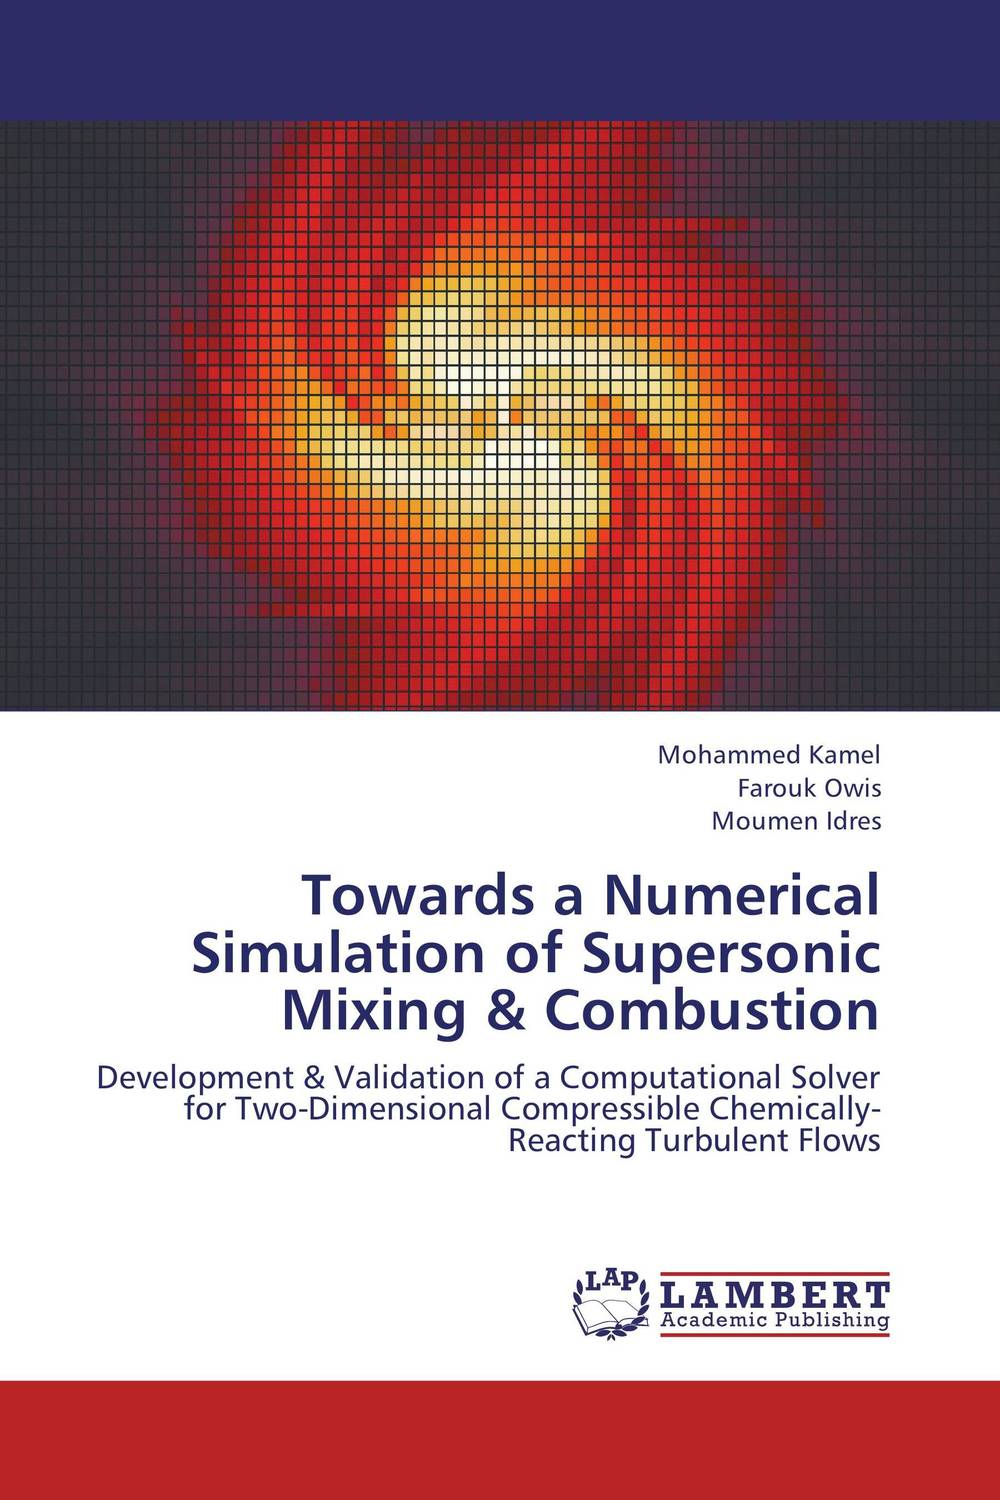 Towards a Numerical Simulation of Supersonic Mixing & Combustion